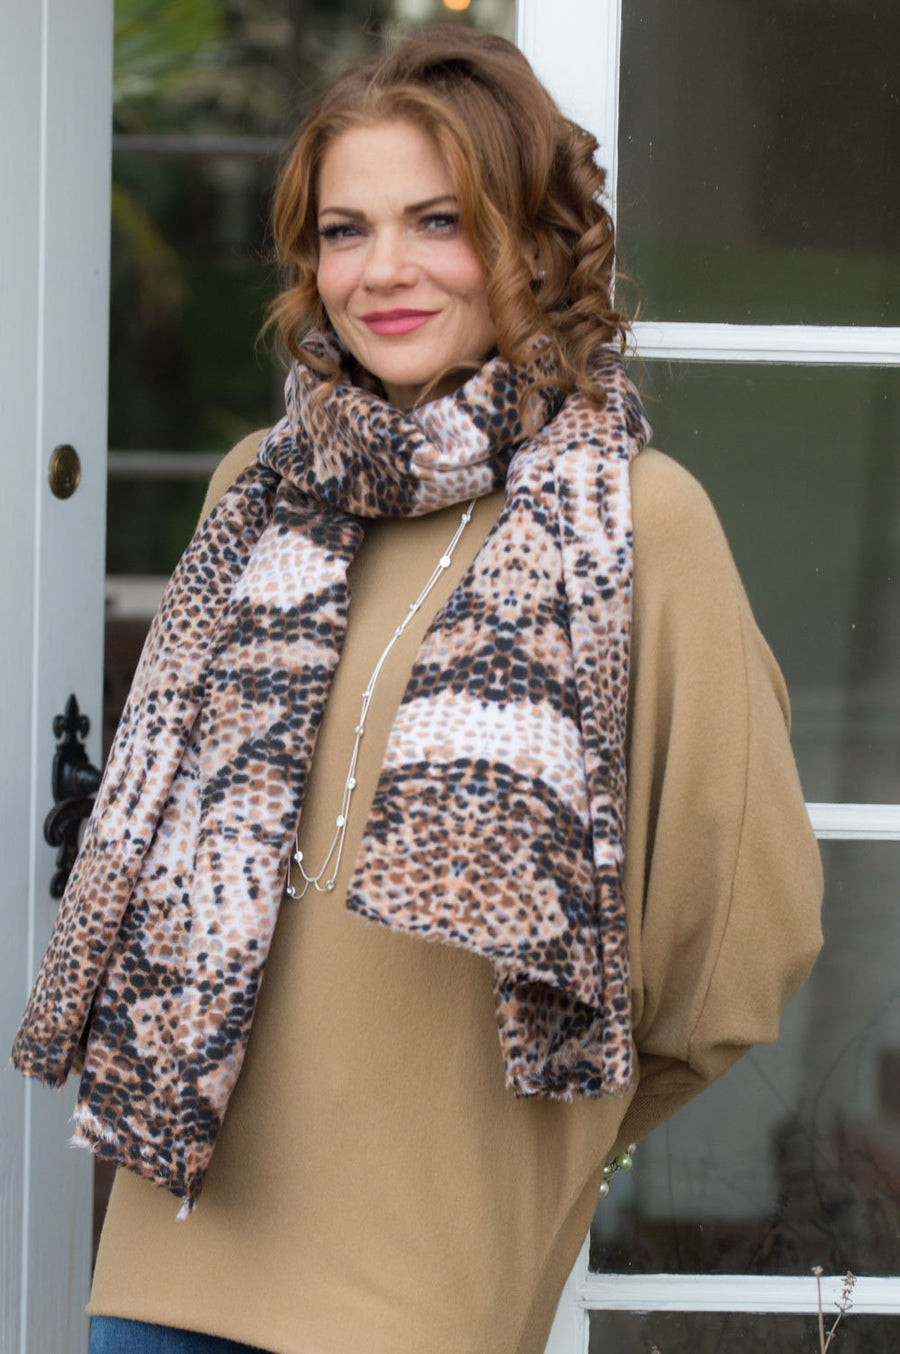 Brown and Tan African Print Scarf - Mandy's Heaven